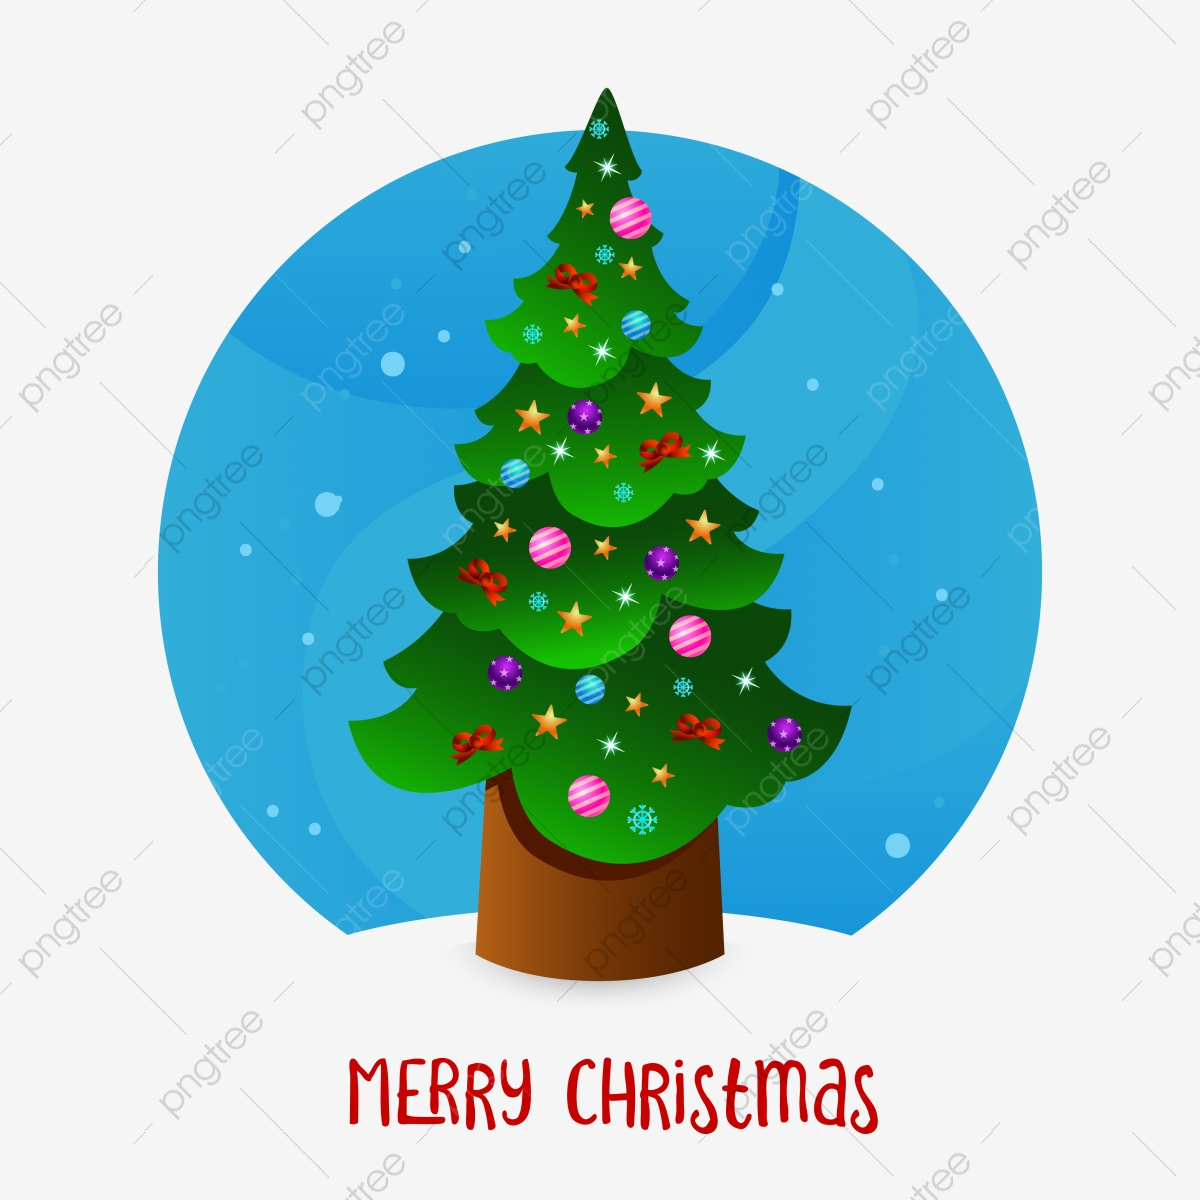 Simple Christmas Tree Vector Element With Blue Circle Background Christmas Vector Christmas Decoration Christmas Ornaments Png And Vector With Transparent Background For Free Download